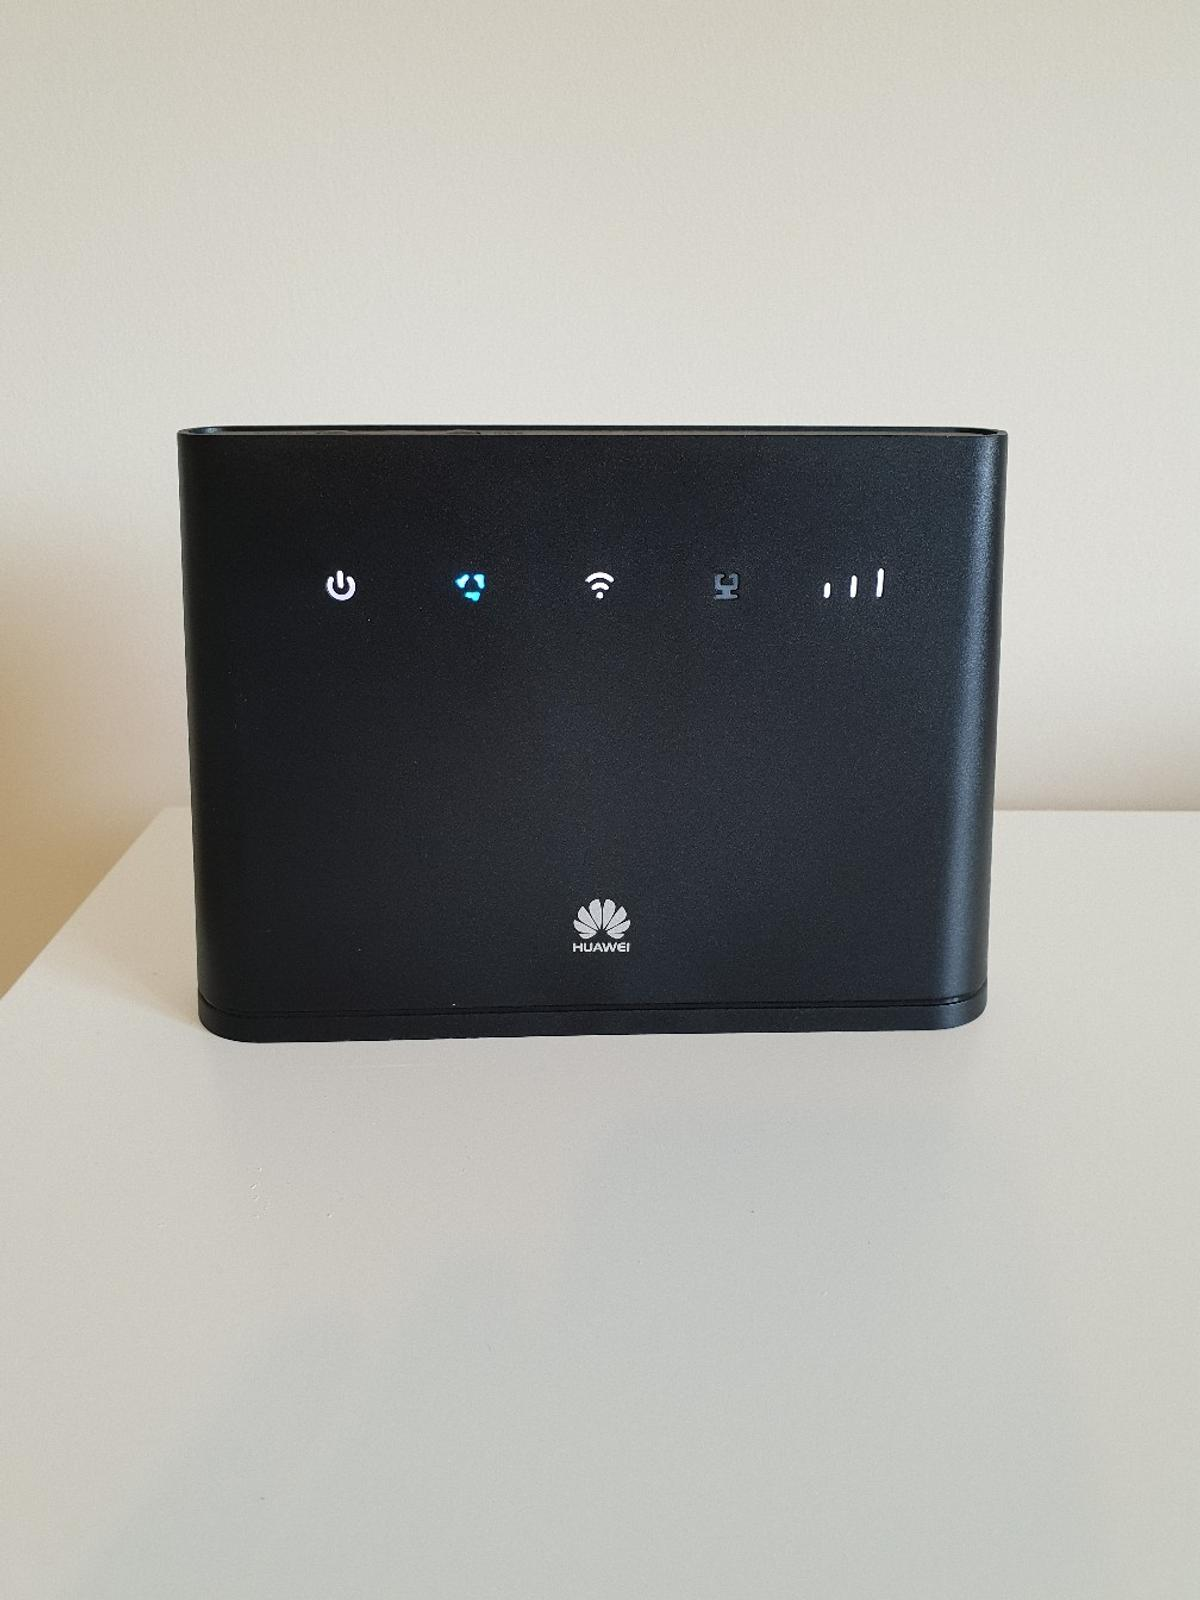 Huawei B310s LTE 4g wireless router Home-Fi in BS22 West Wick for